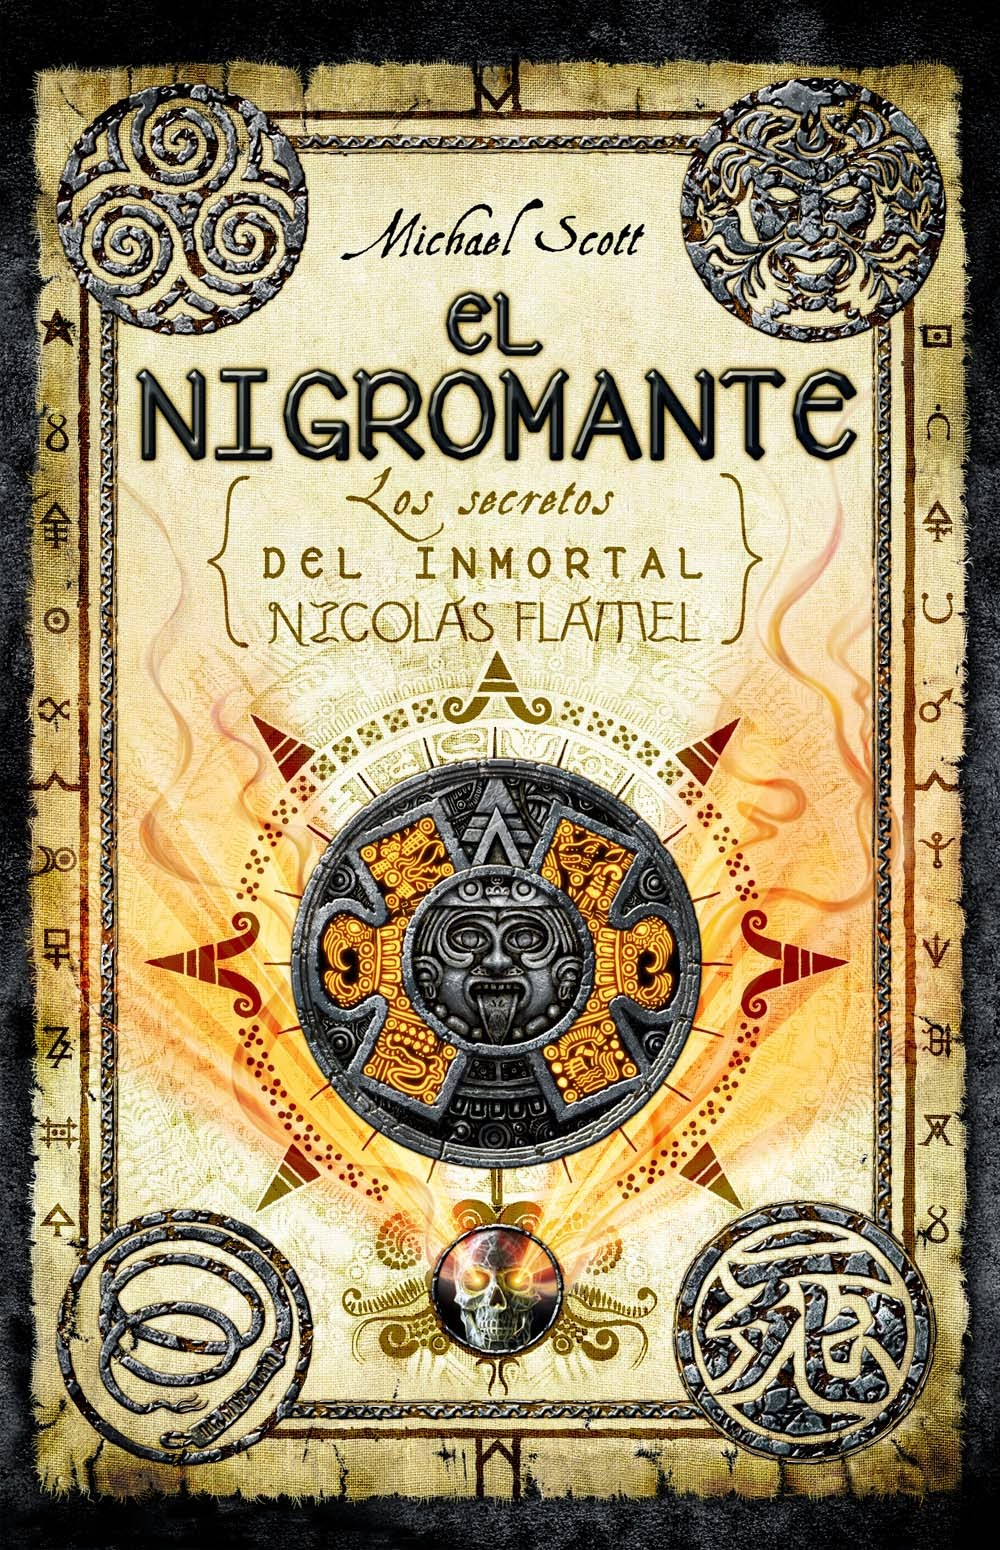 El Nigrromante (Michael Scott)